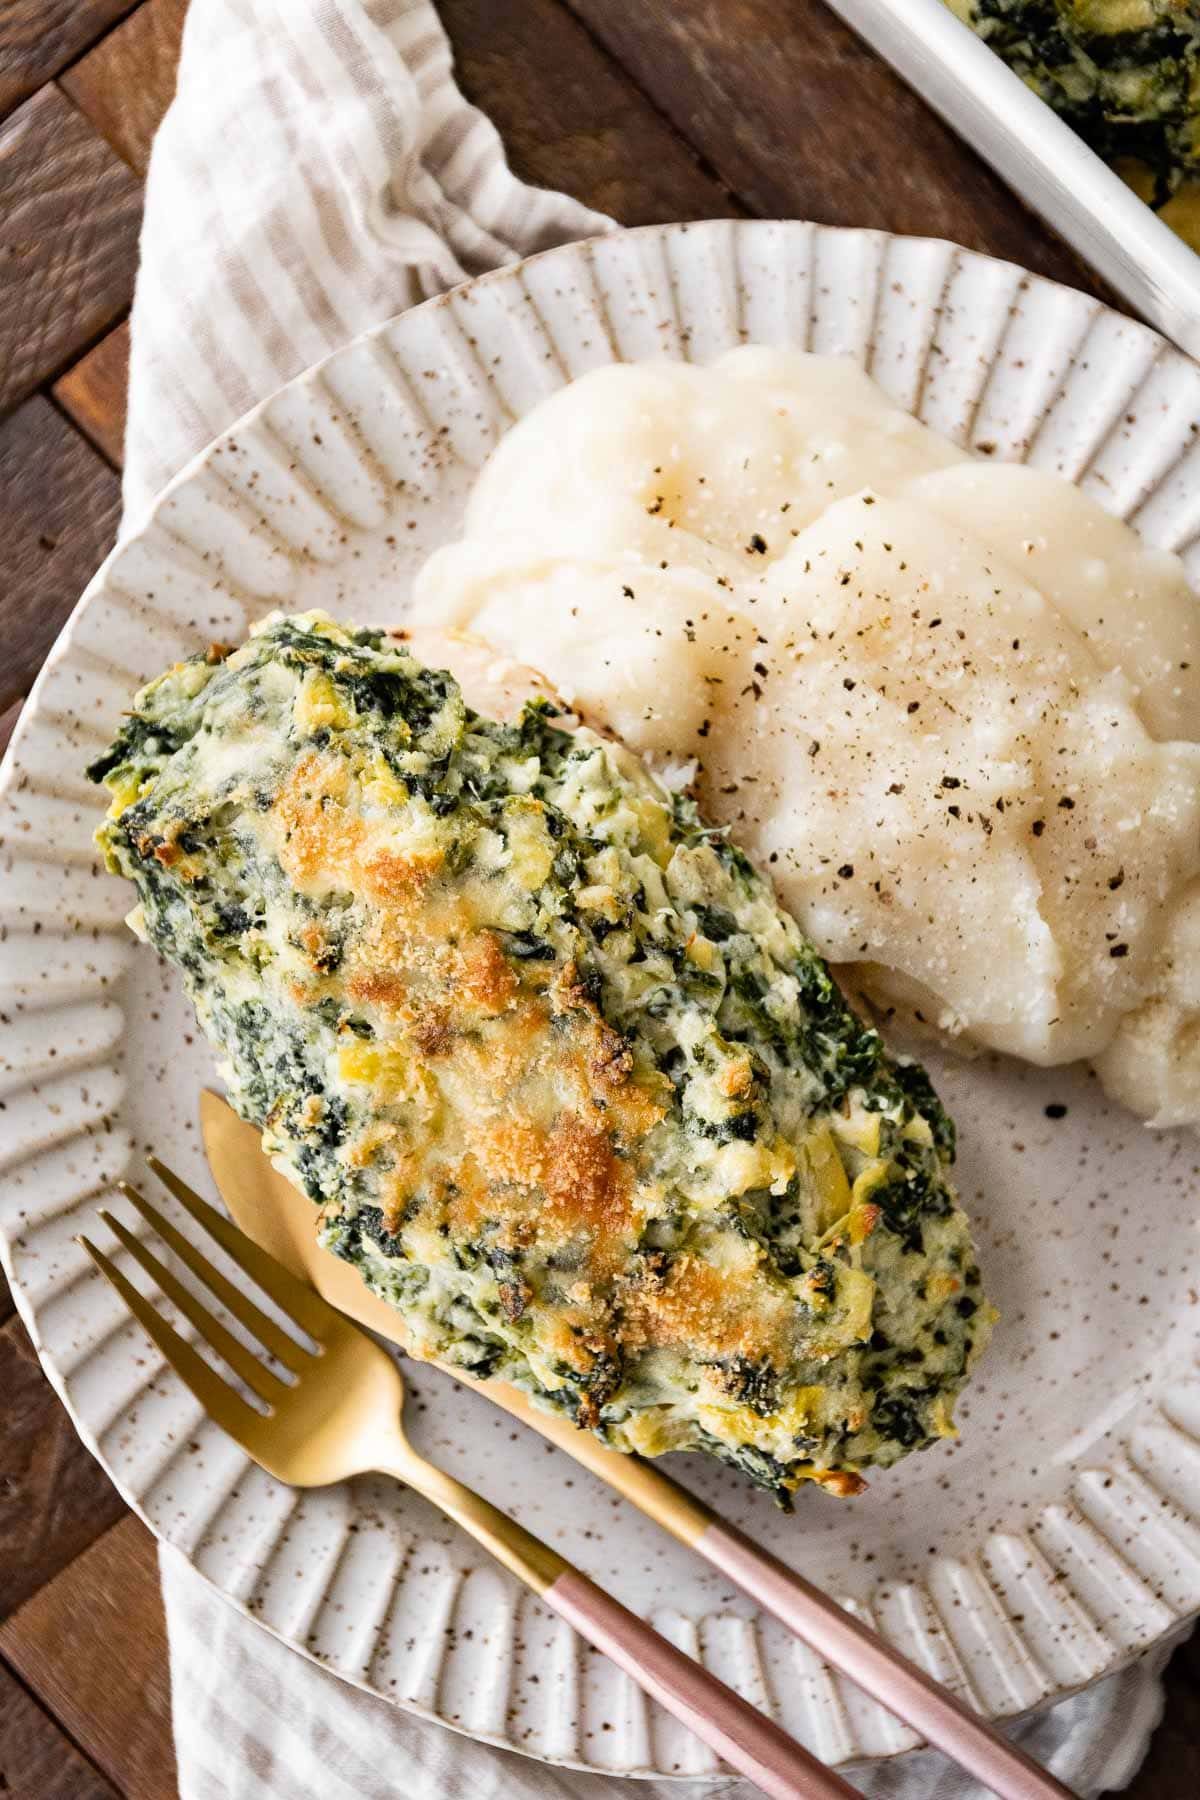 Baked Spinach Artichoke Chicken on plate with mashed potatoes